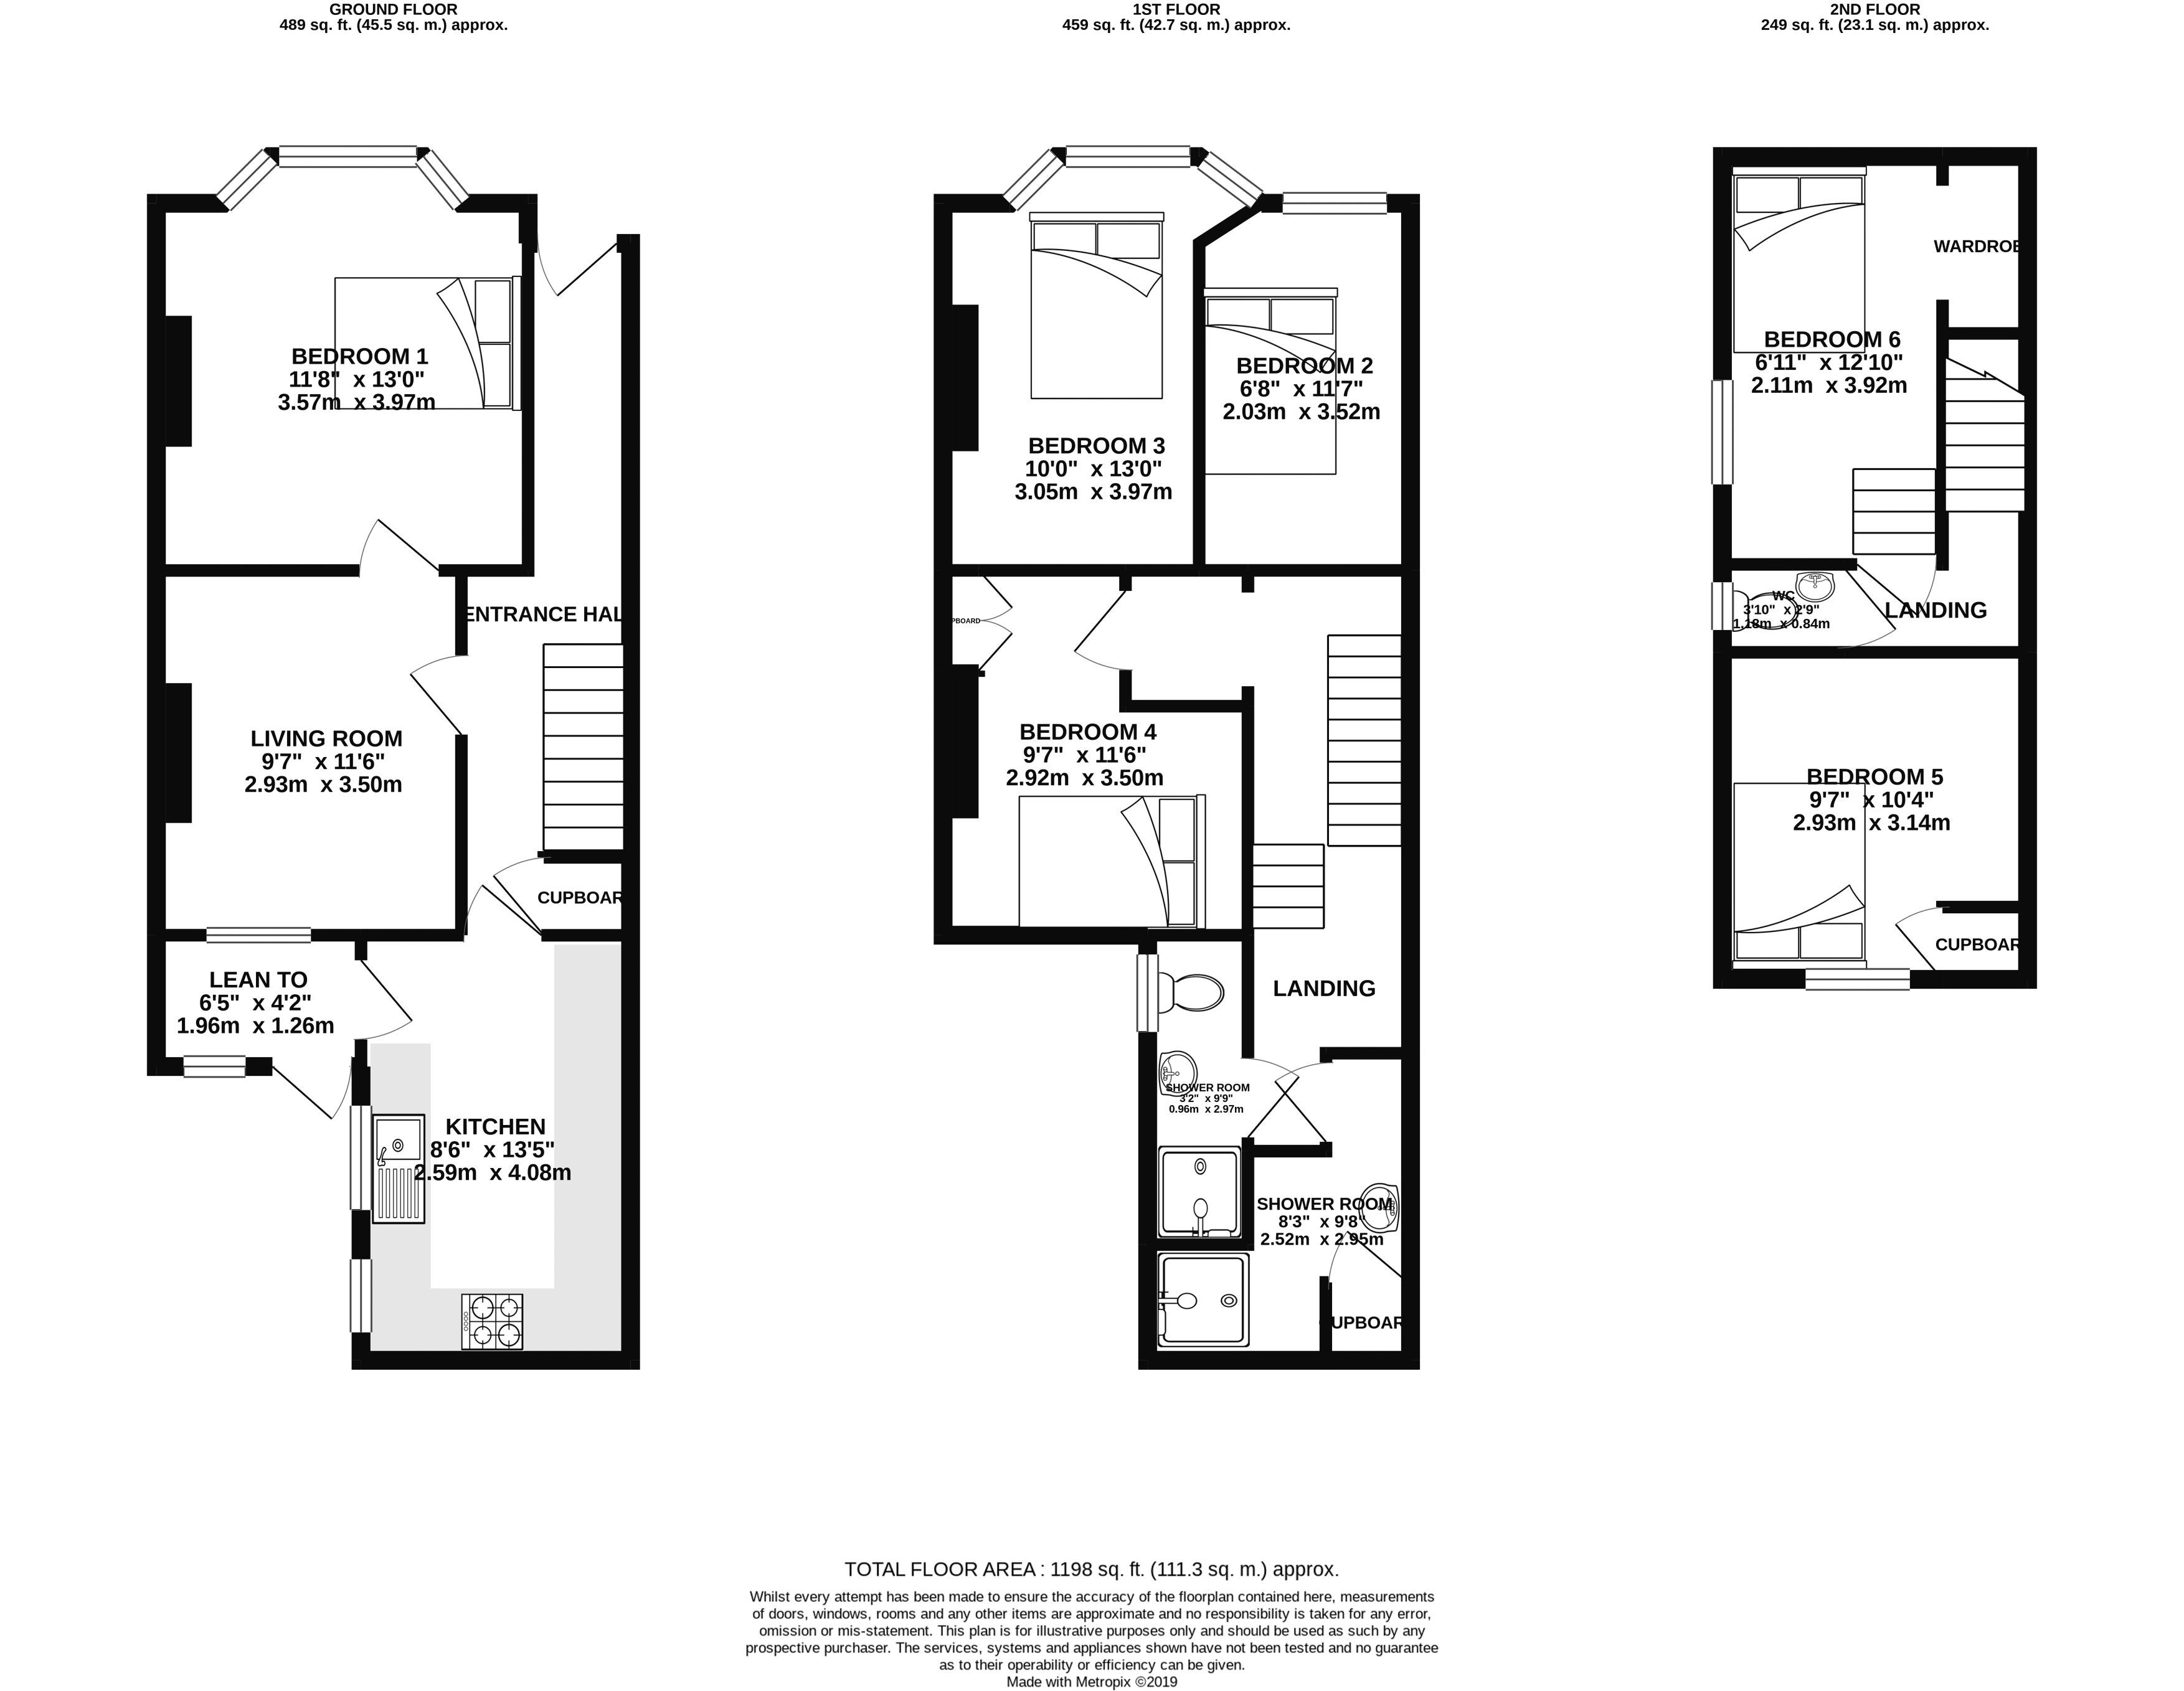 Floor plans for Cobden Road, Brighton property for sale in Hanover, Brighton by Coapt